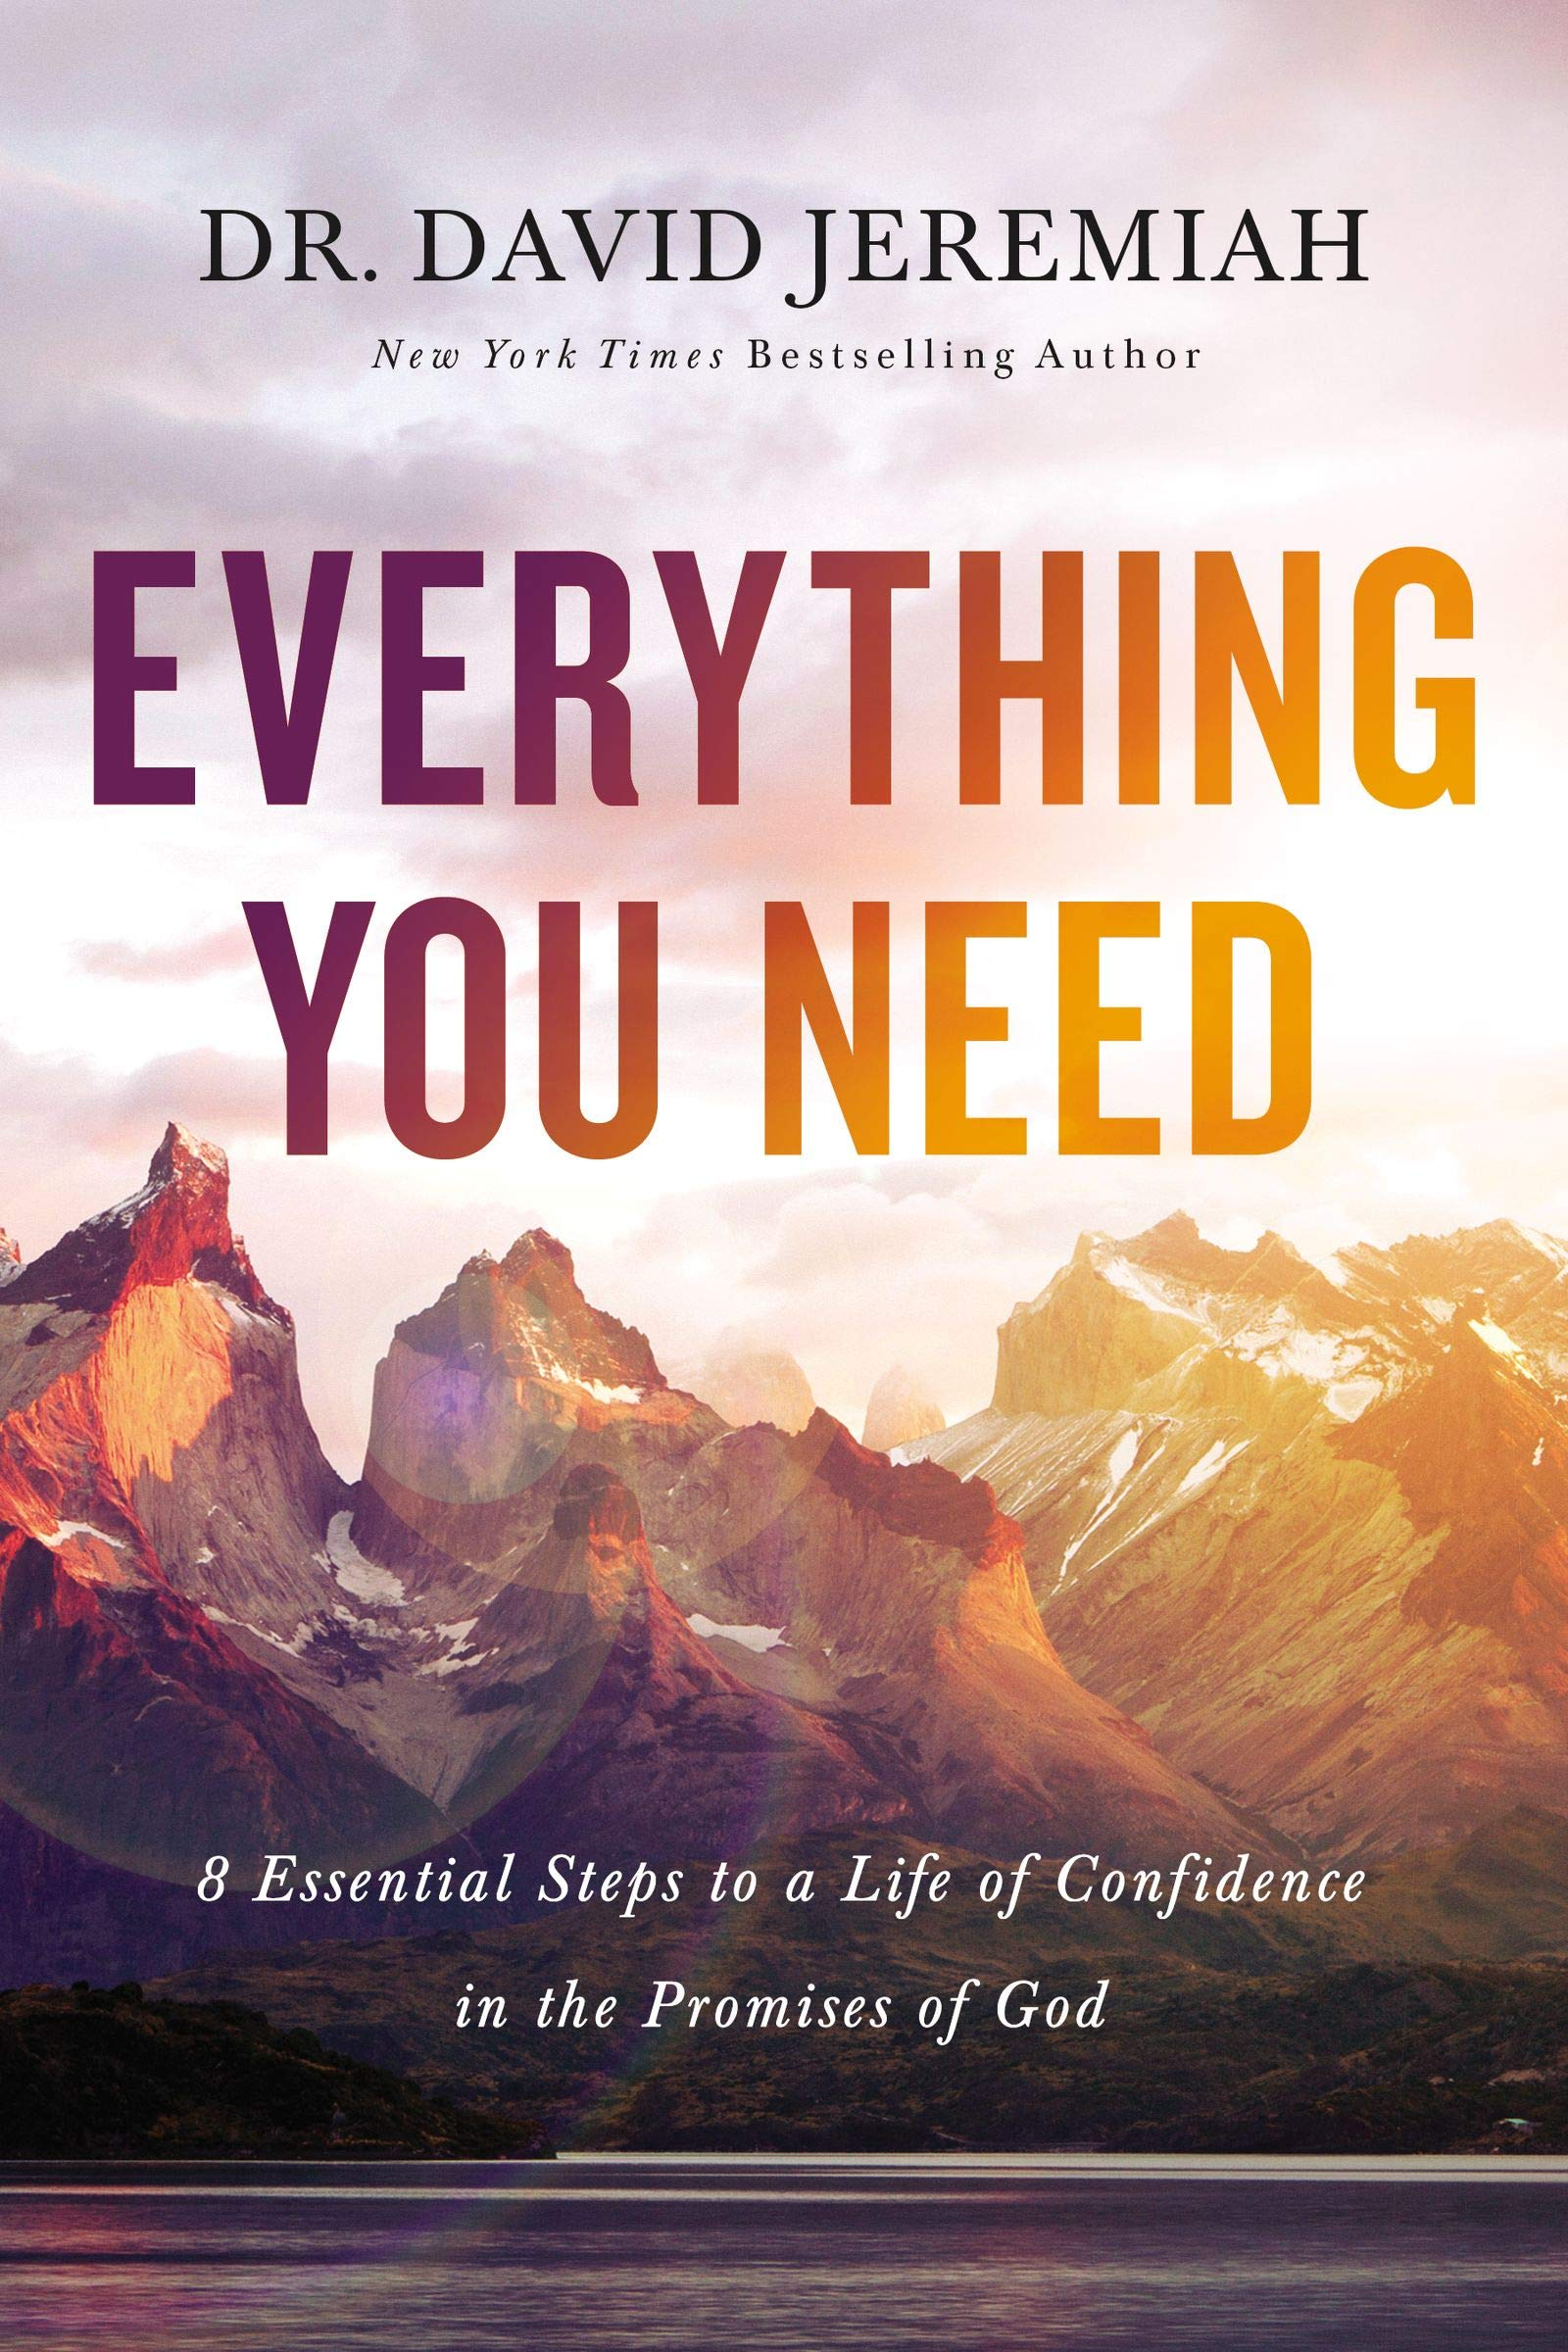 Everything You Need: 8 Essential Steps to a Life of Confidence in the Promises of God by HarperCollins Christian Pub.